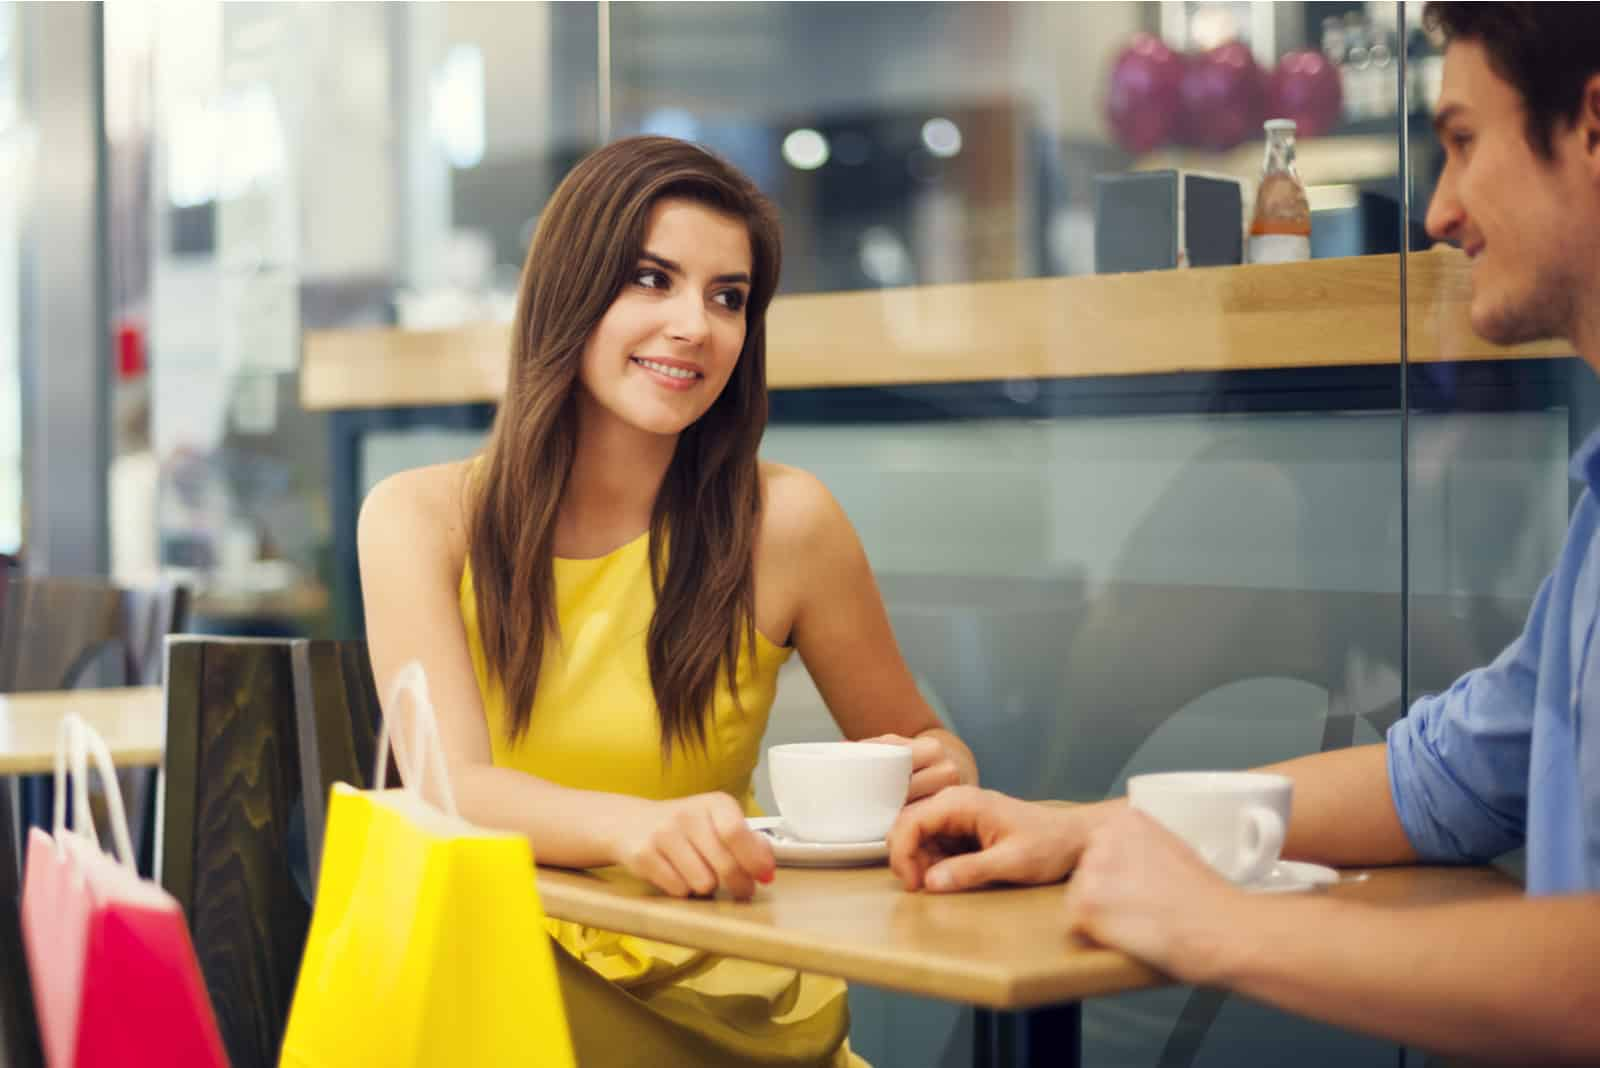 a man and a woman are sitting at a table